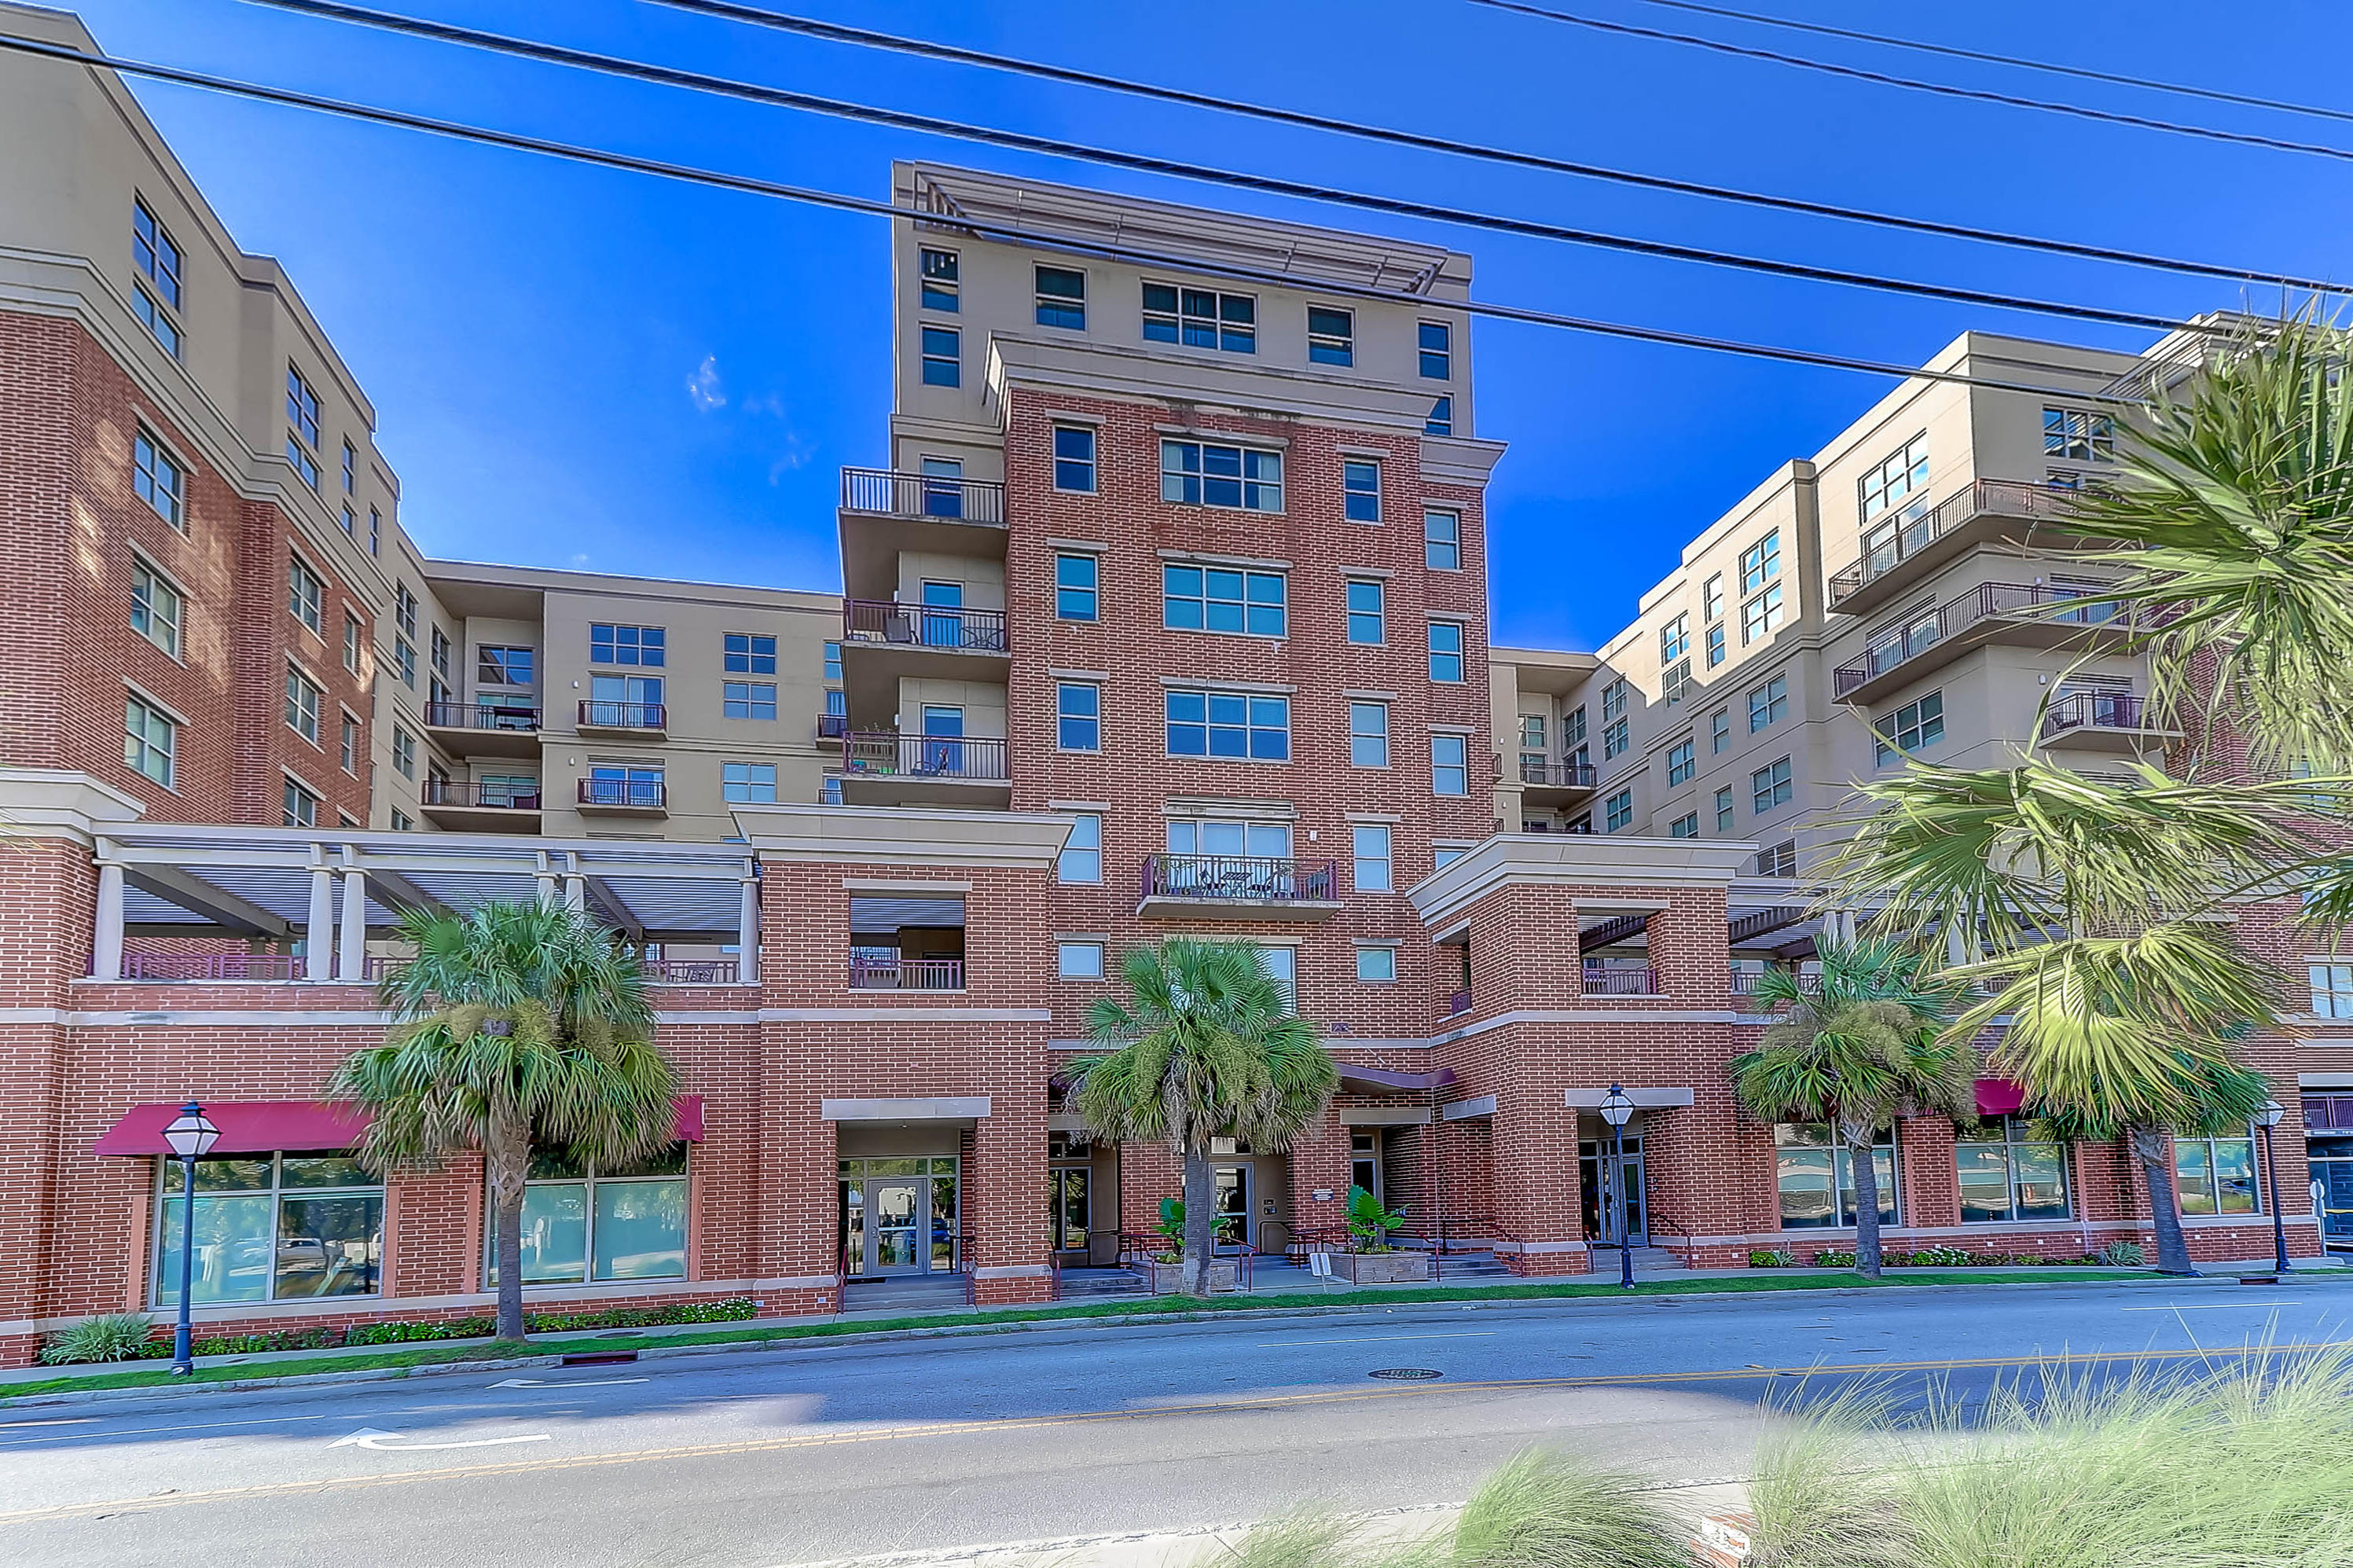 Bee Street Lofts Homes For Sale - 150 Bee, Charleston, SC - 5